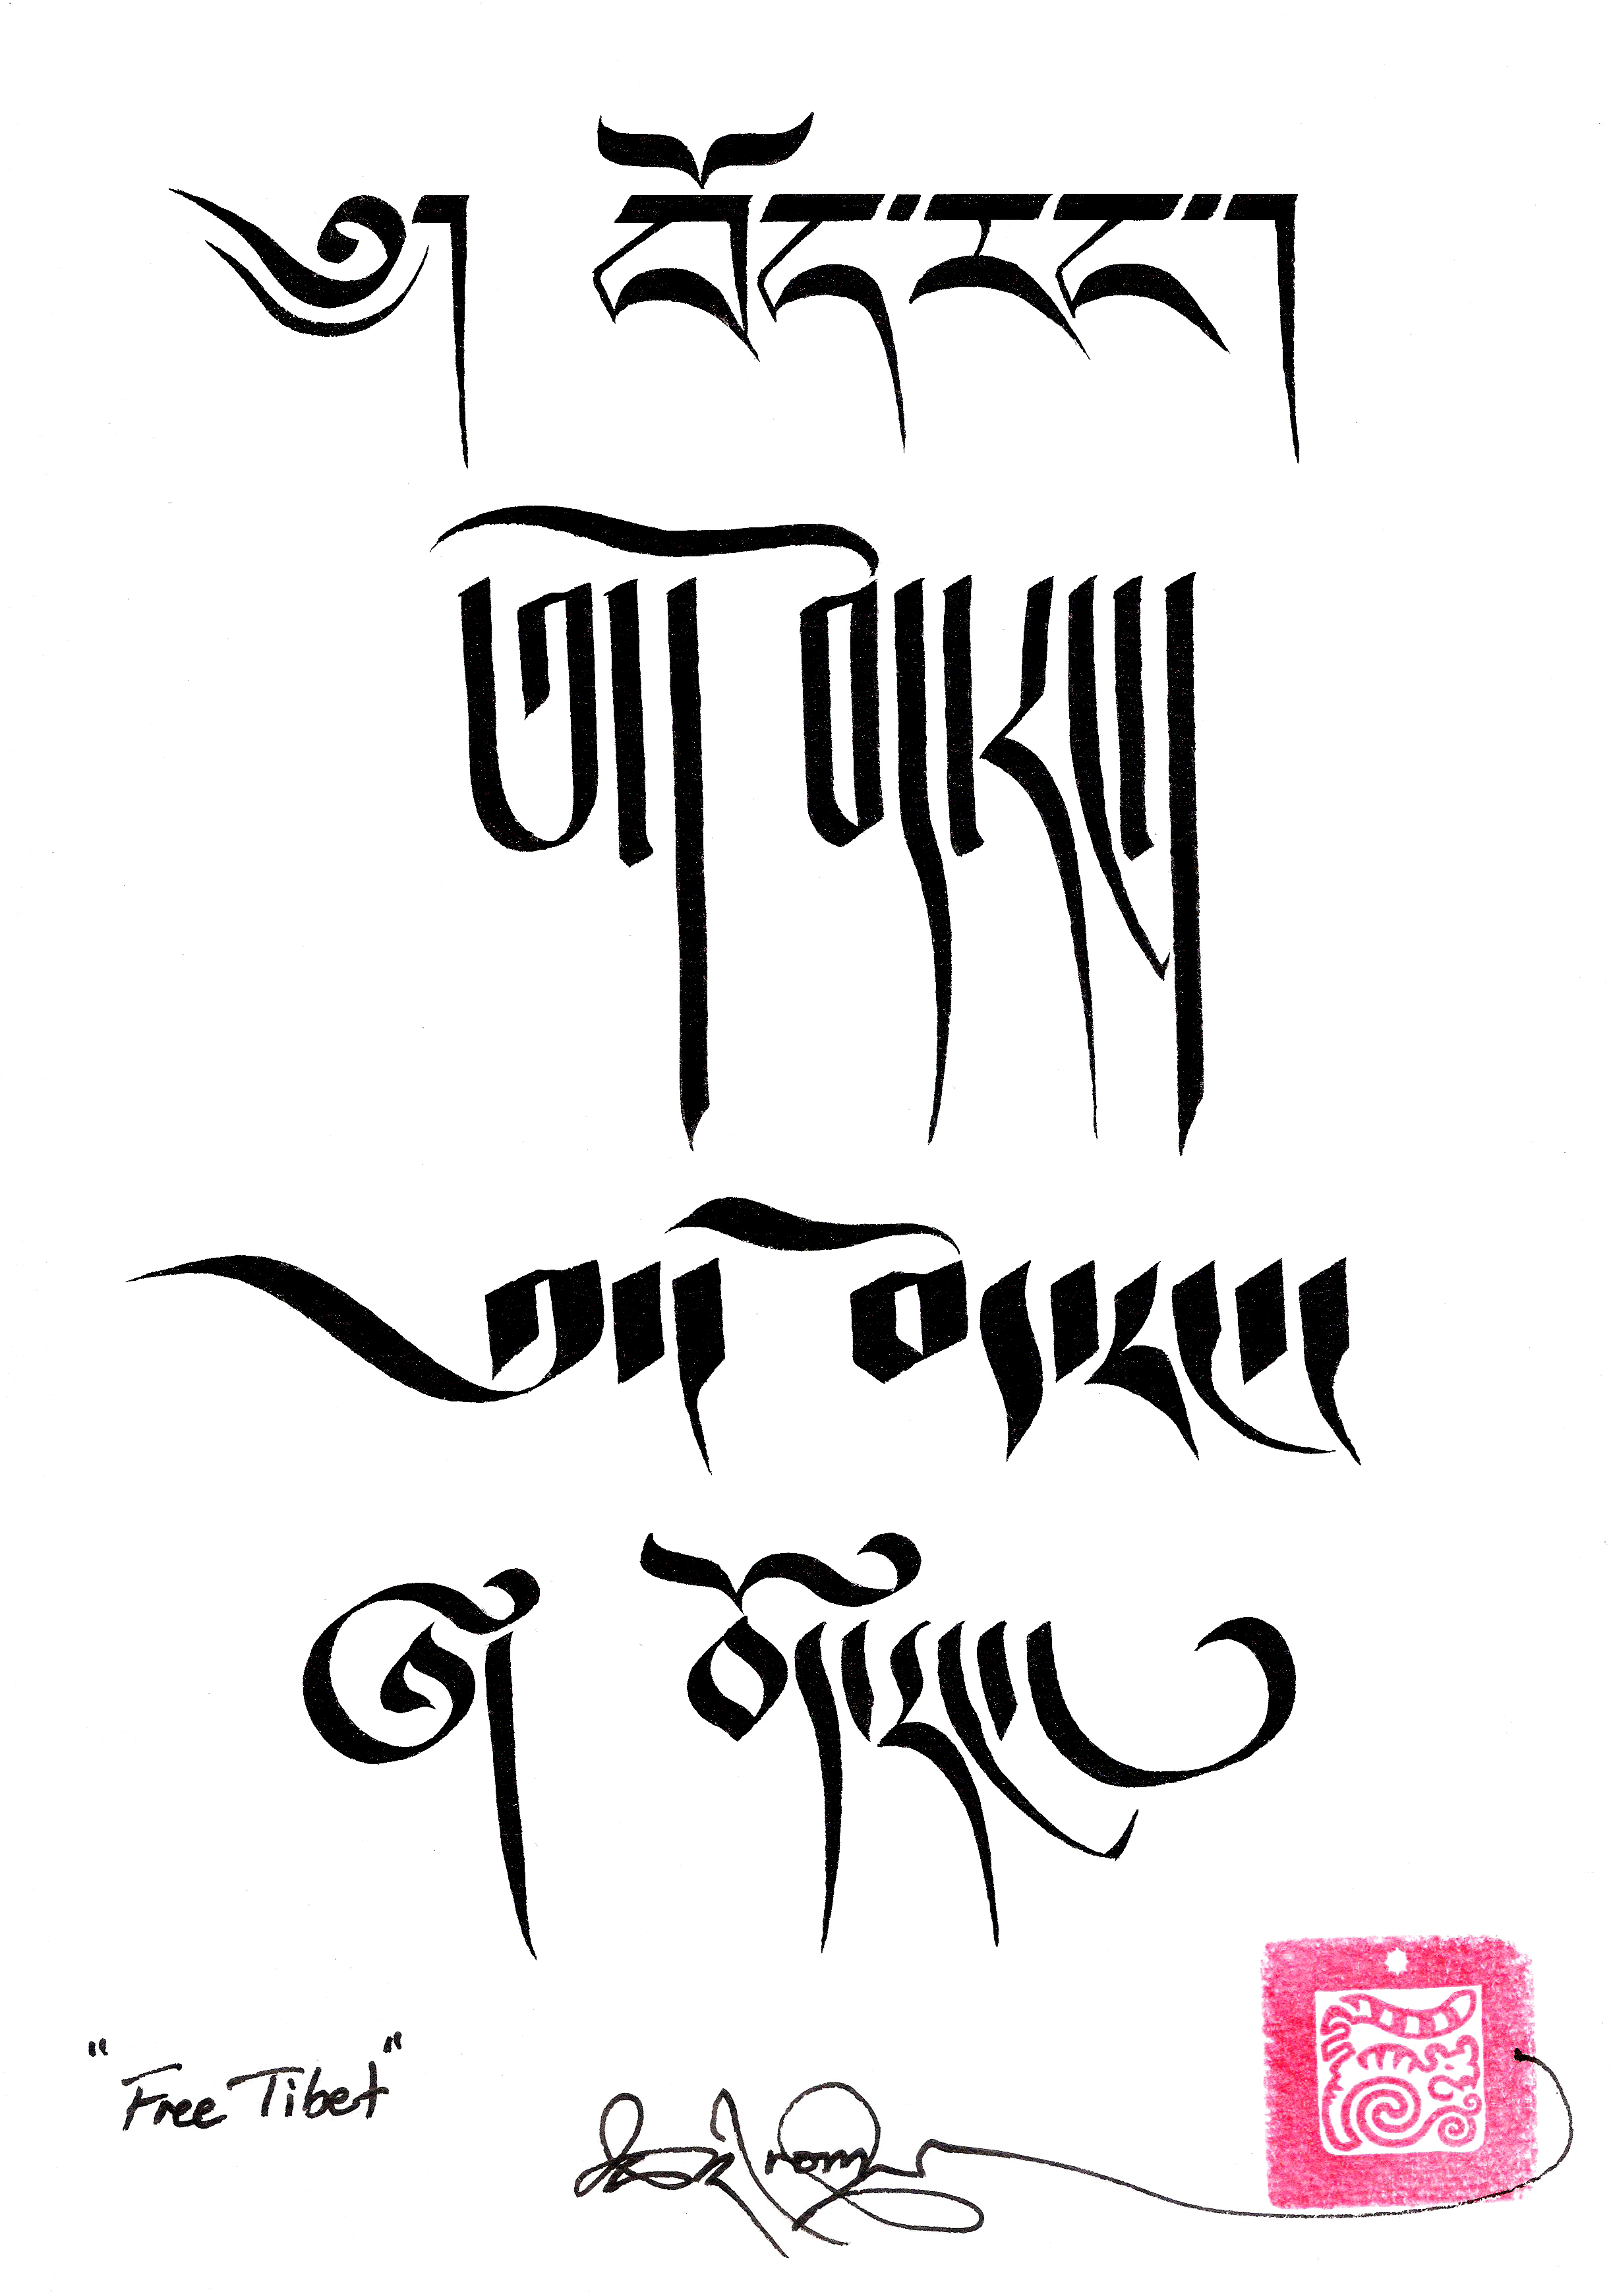 Four Different Tibetan Script Styles Traditionally And Commonly Used By Tibetans